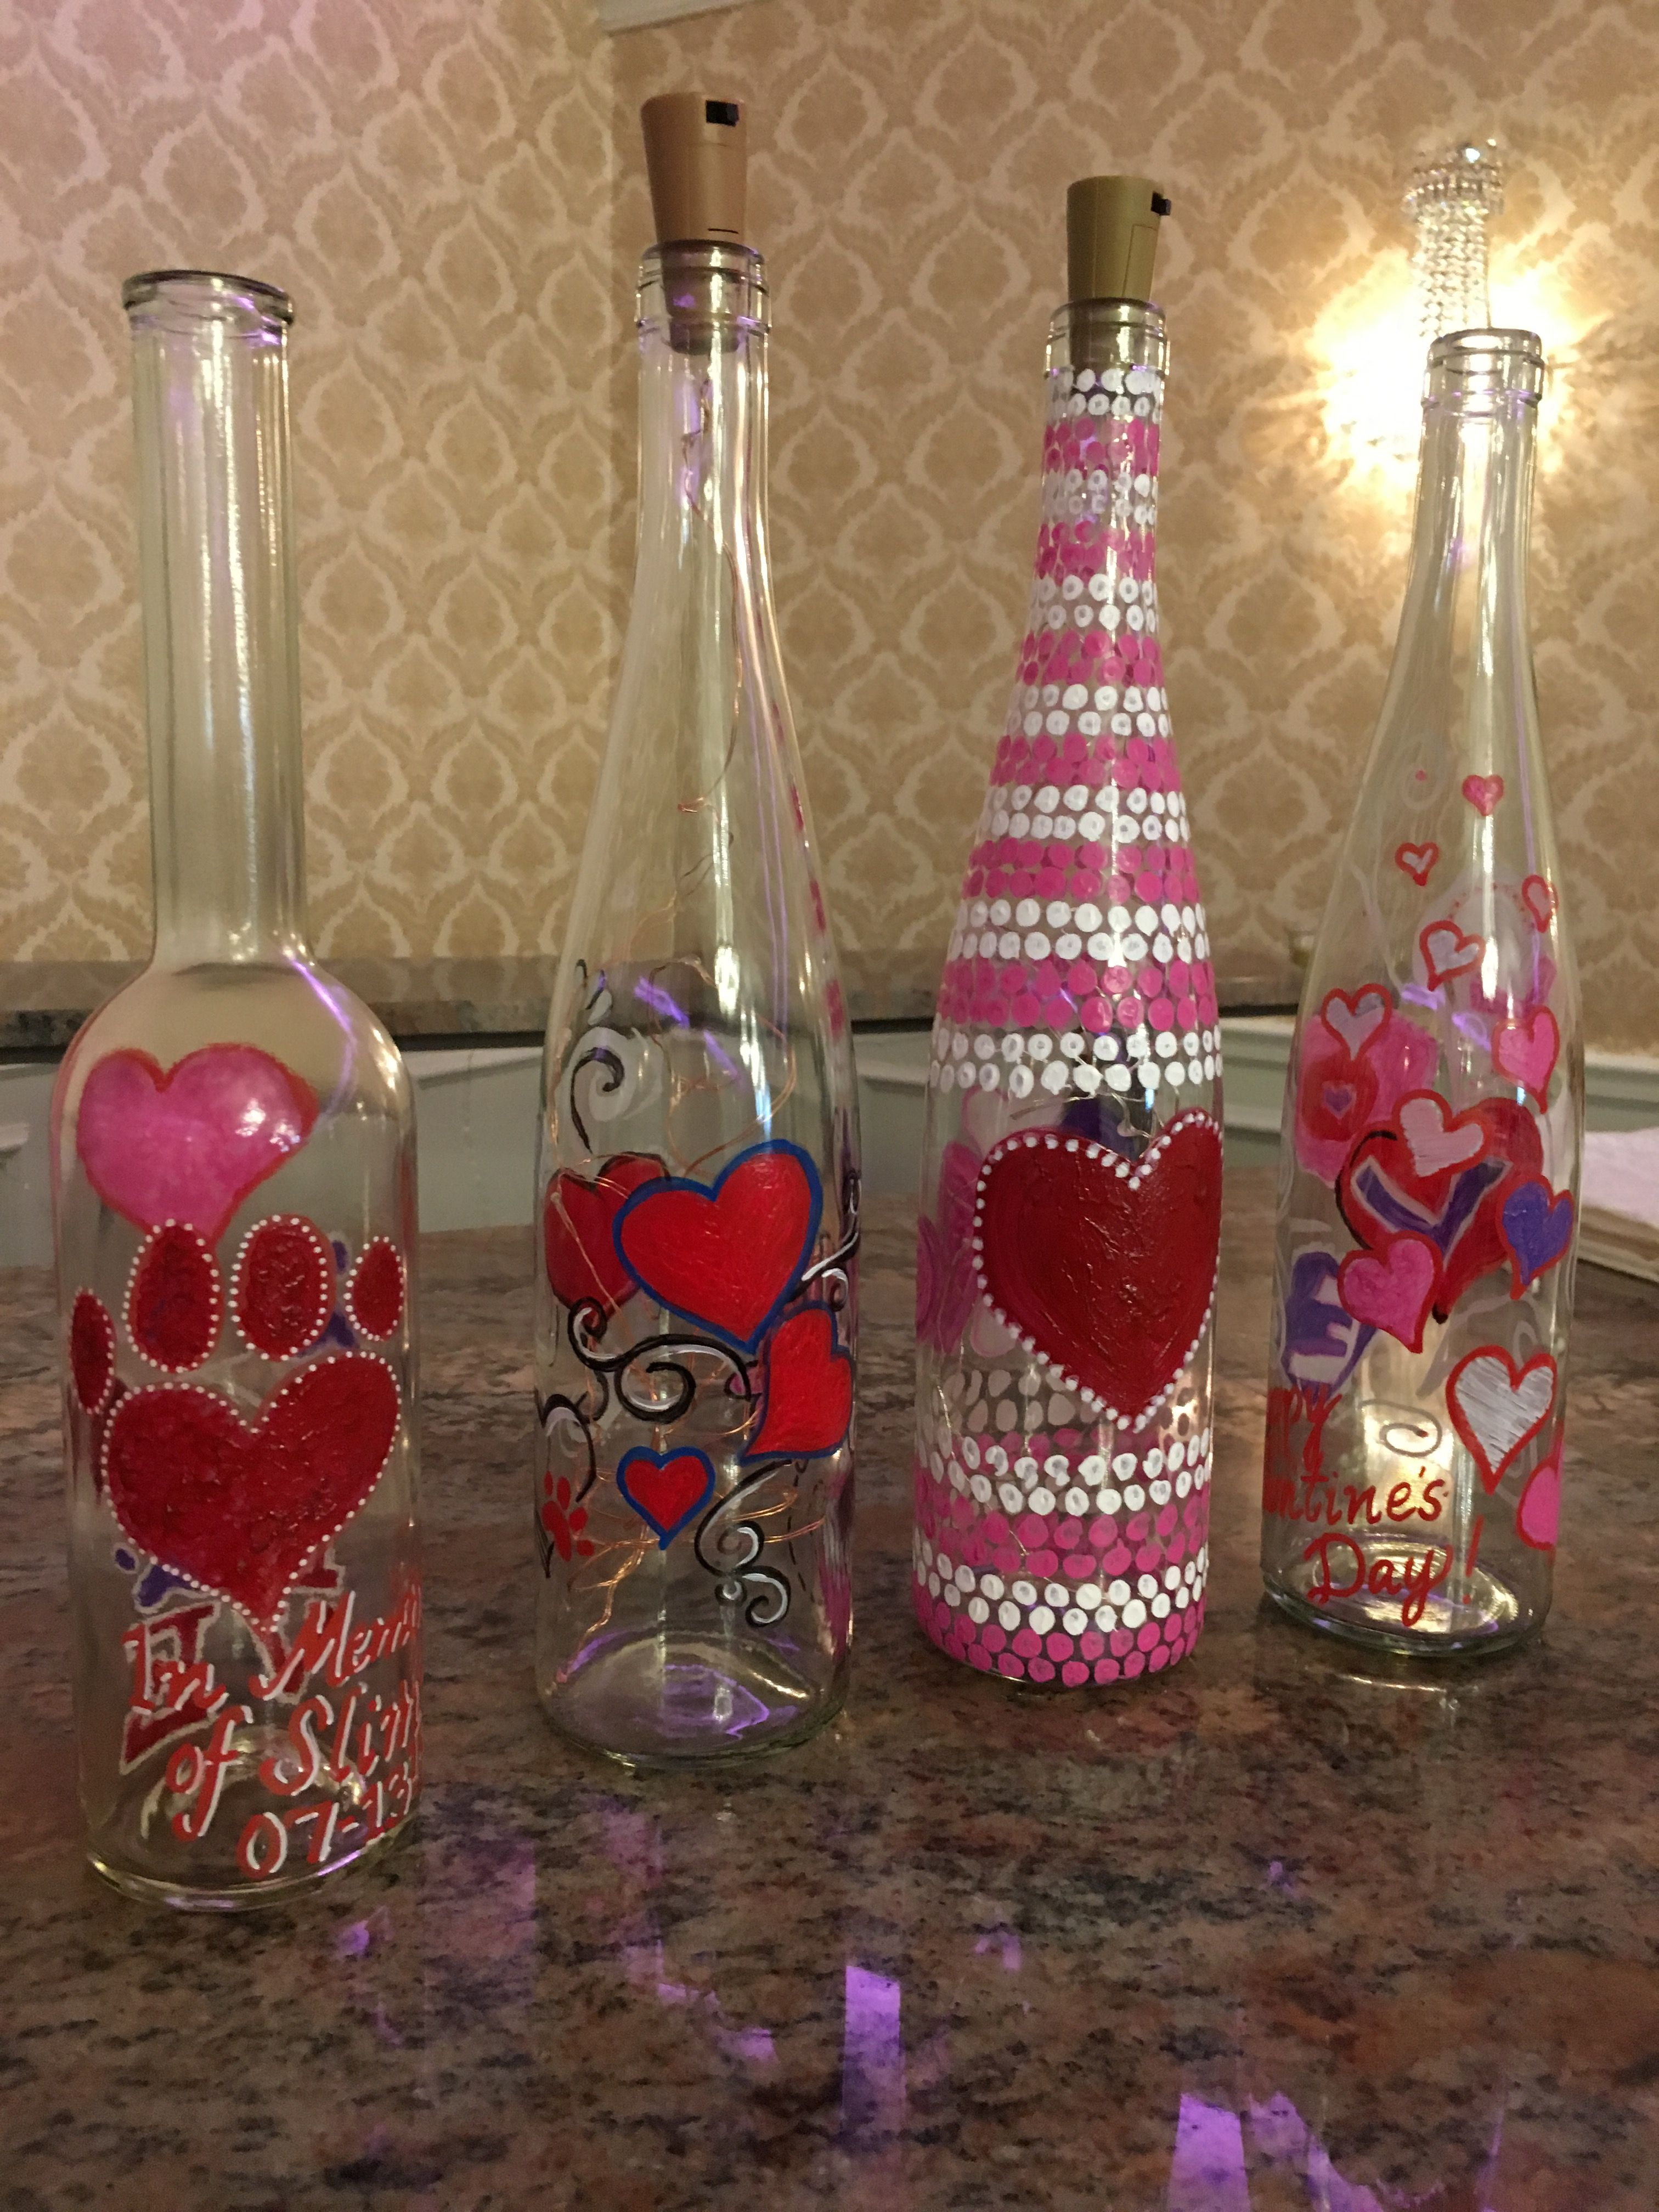 Pin By Sharon Reustle On Wine Bottle Painting Wine Bottle Crafts Diy Holiday Decor Bottle Crafts